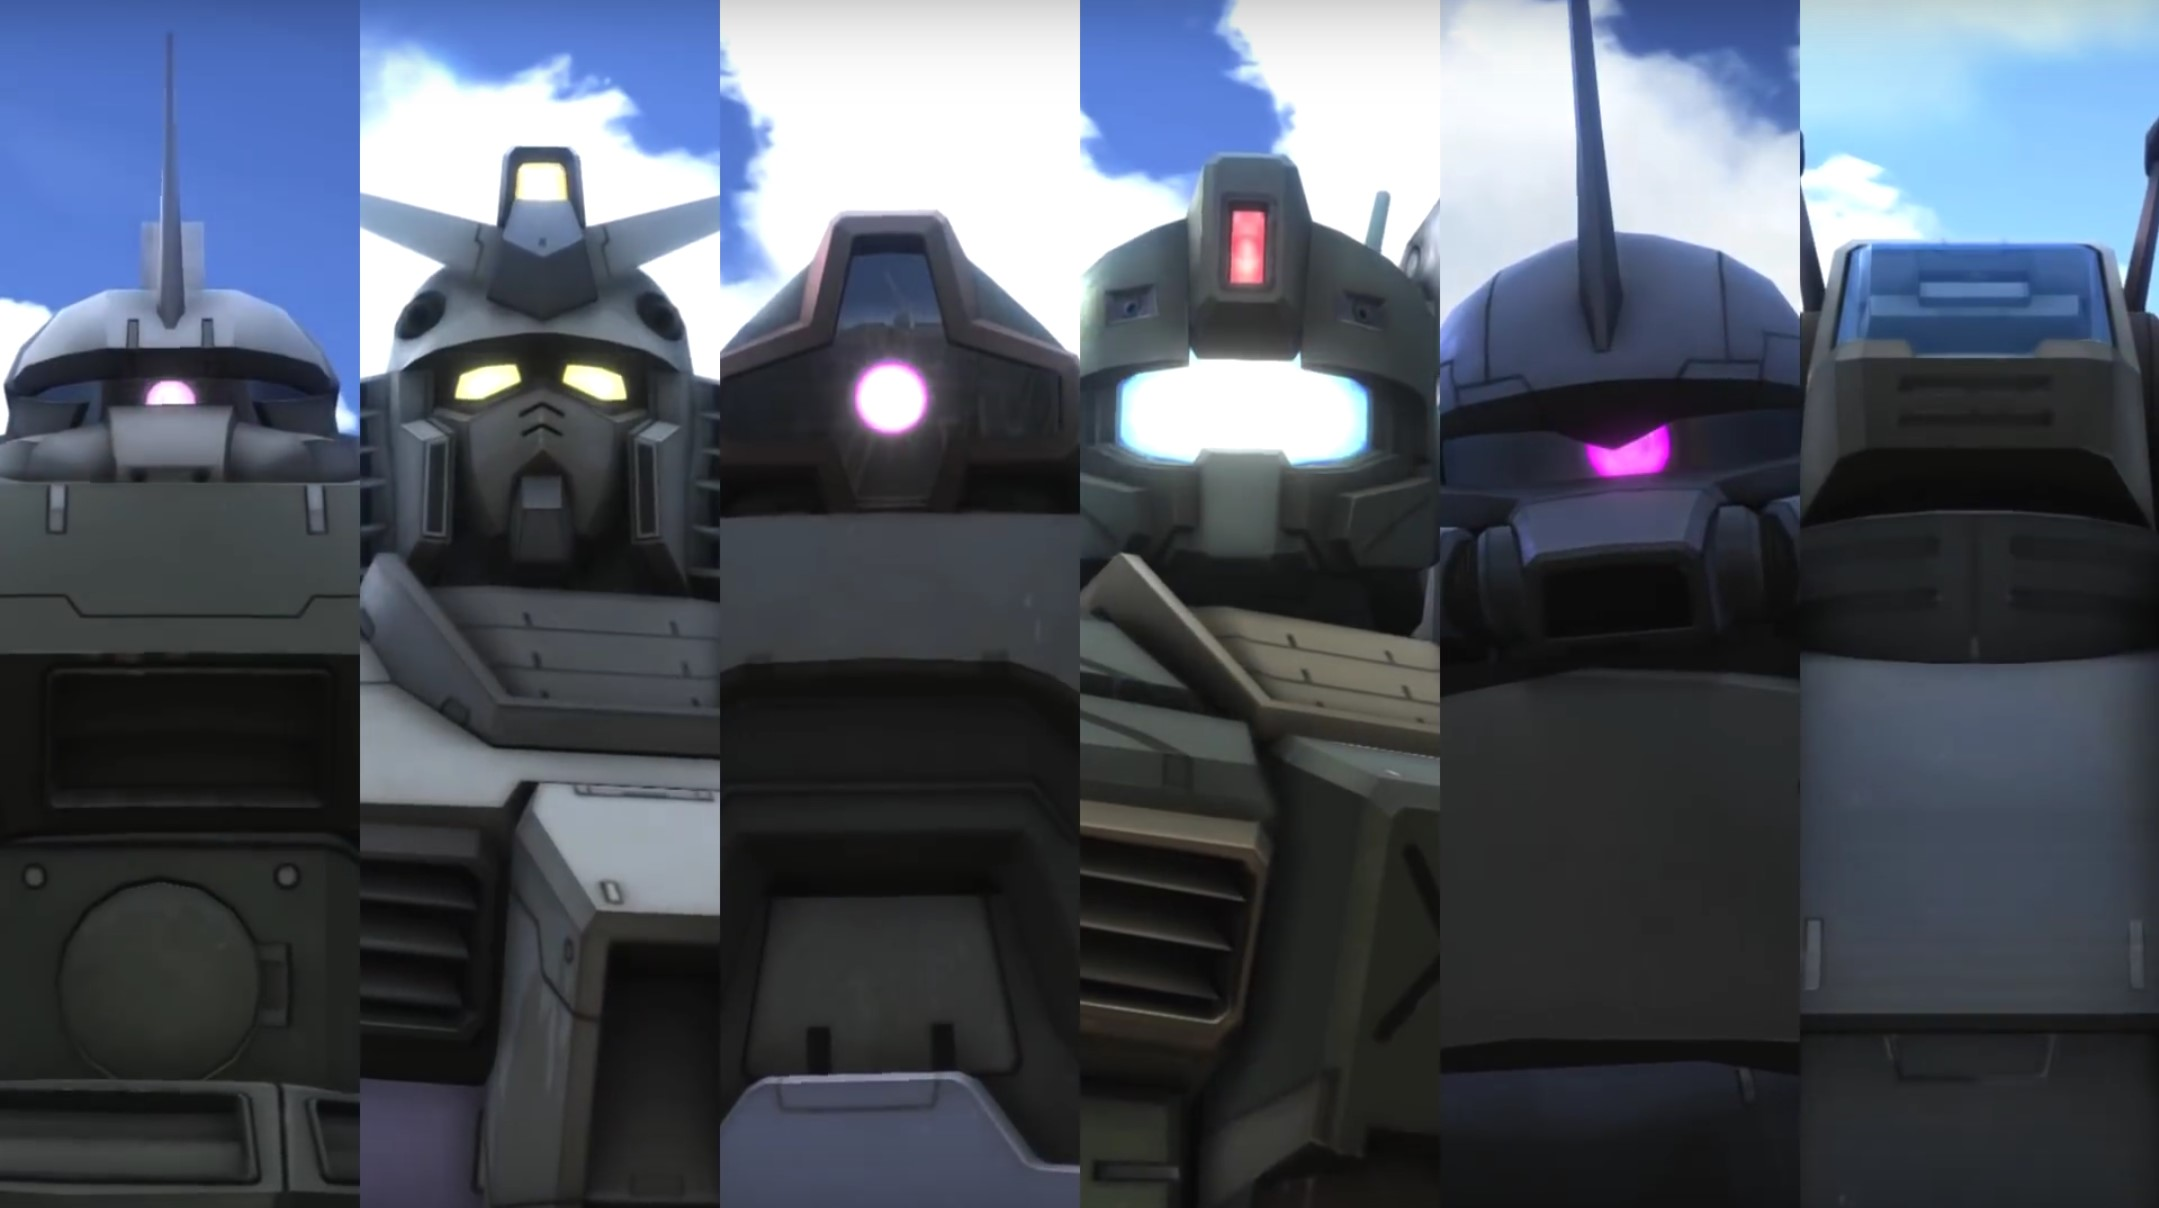 Mobile Suit Gundam Battle Operation 2 is taking the battle to America screenshot